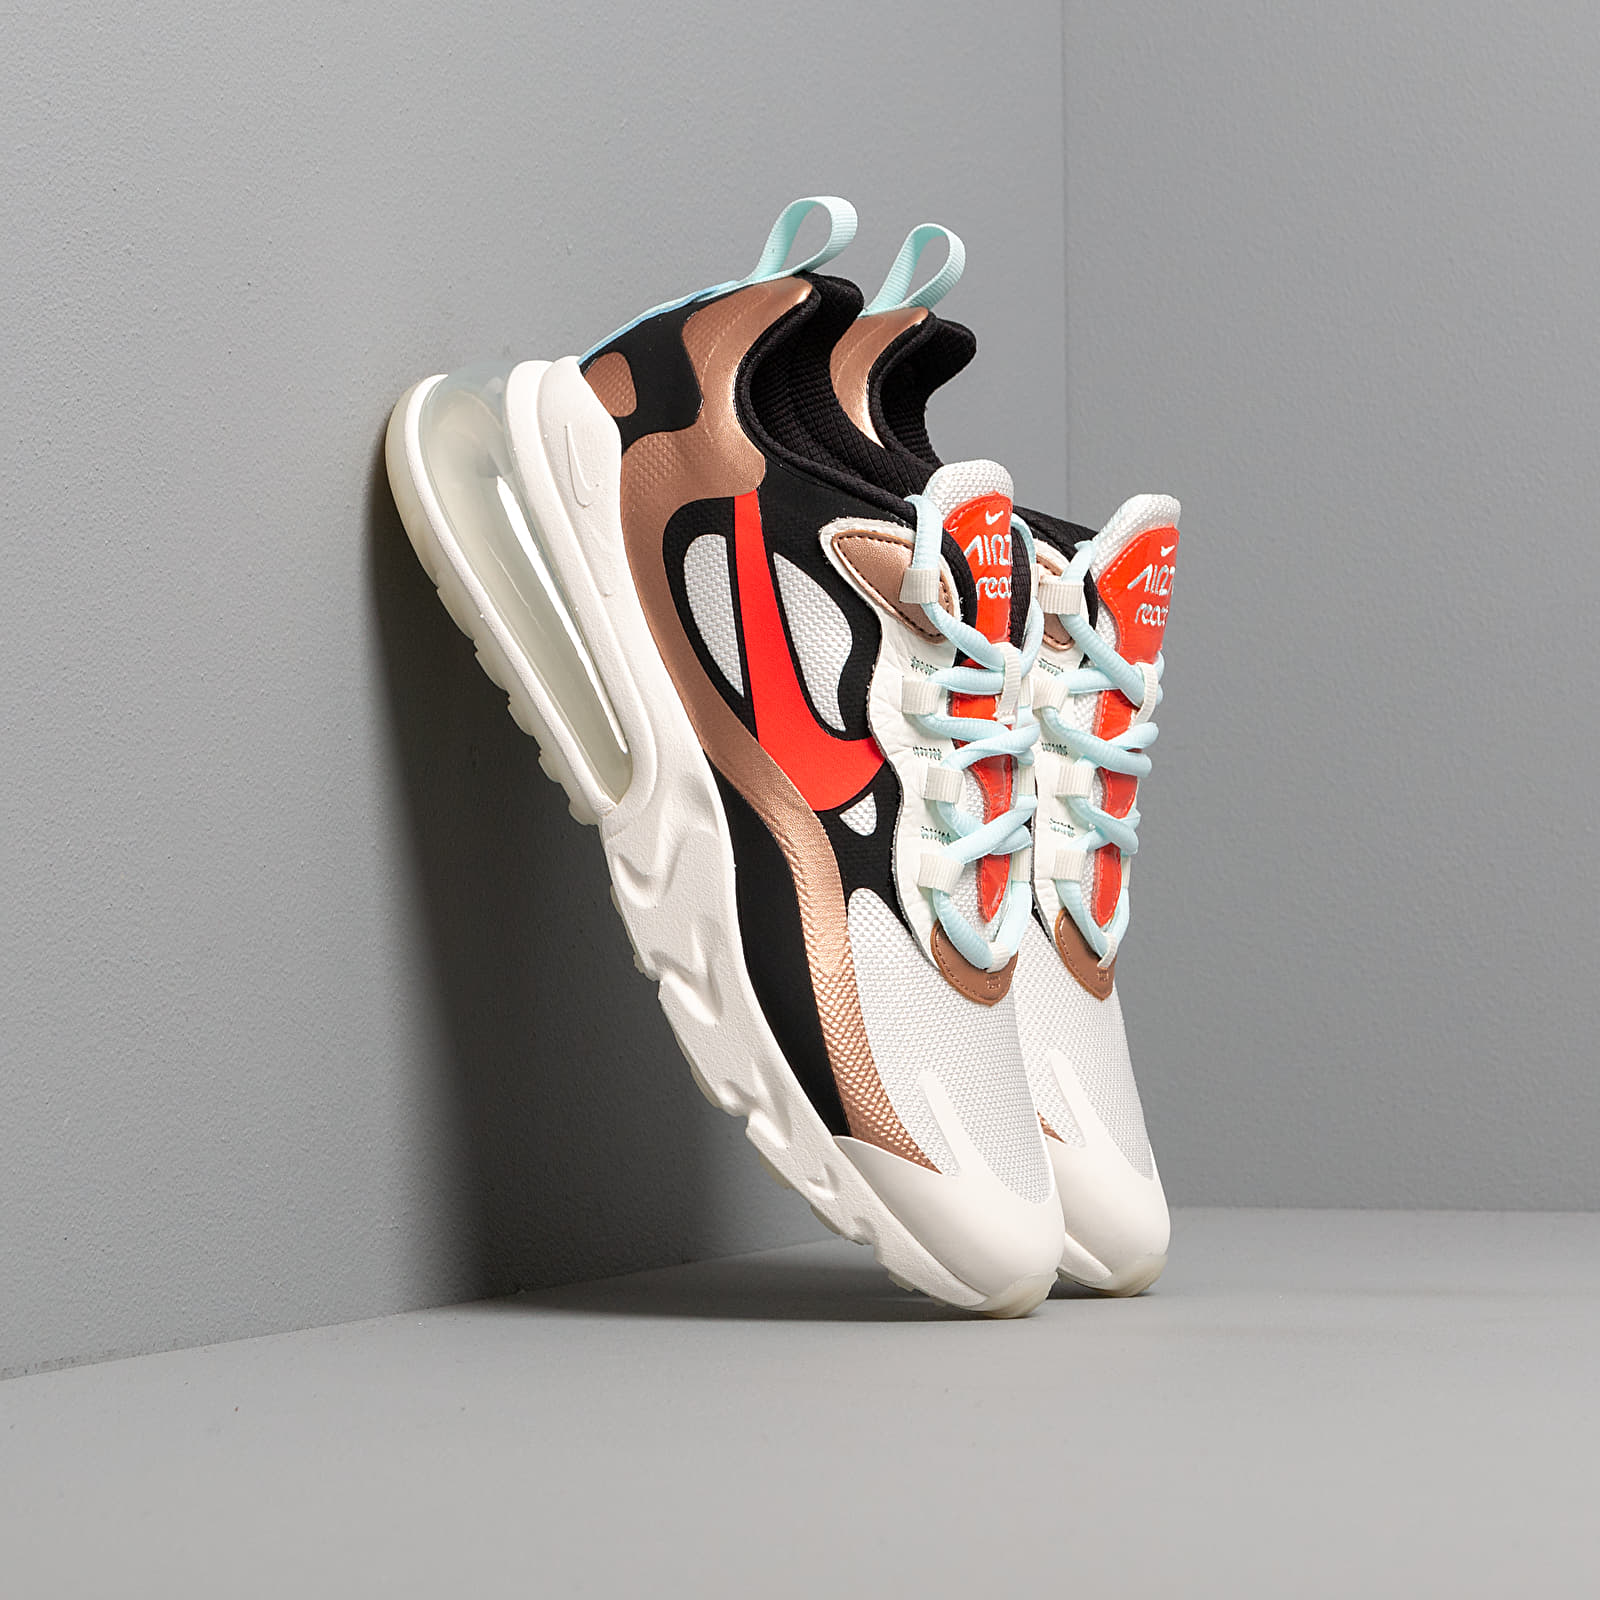 Women's shoes Nike Wmns Air Max 270 React Sail/ Black-Mtlc Red Bronze-Pure Platinum